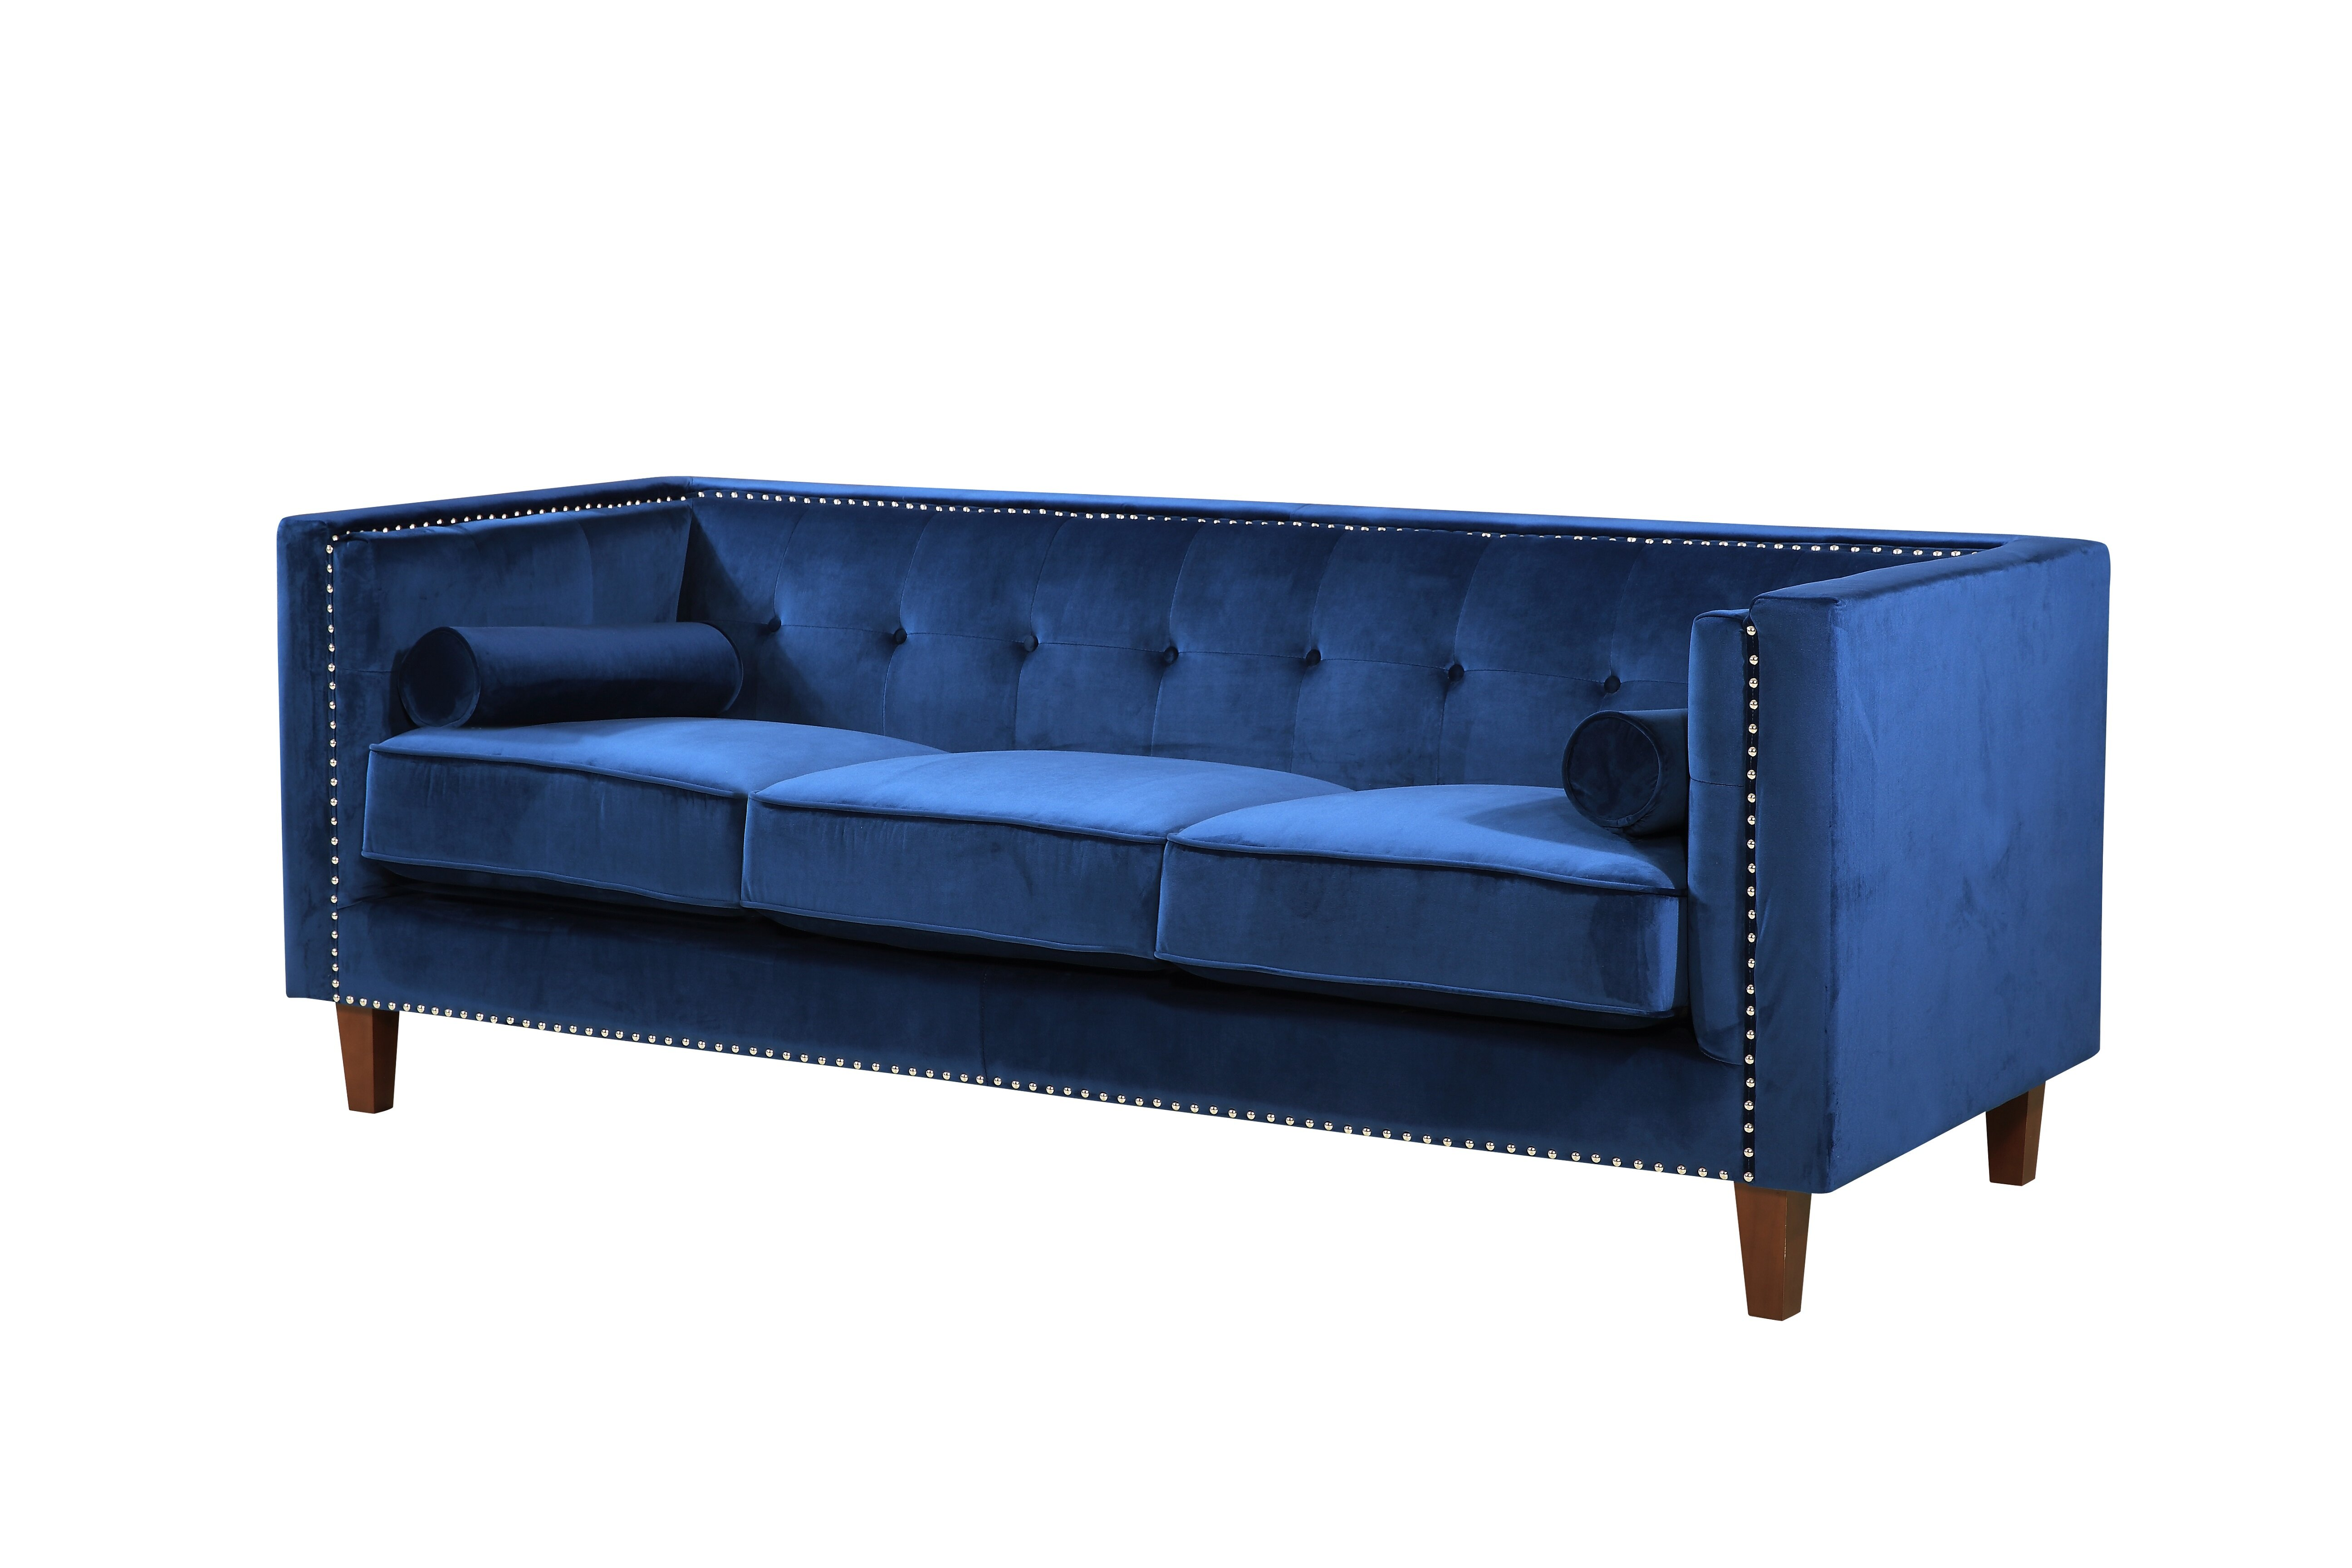 Kittleson Classic Nailhead Chesterfield Sofa